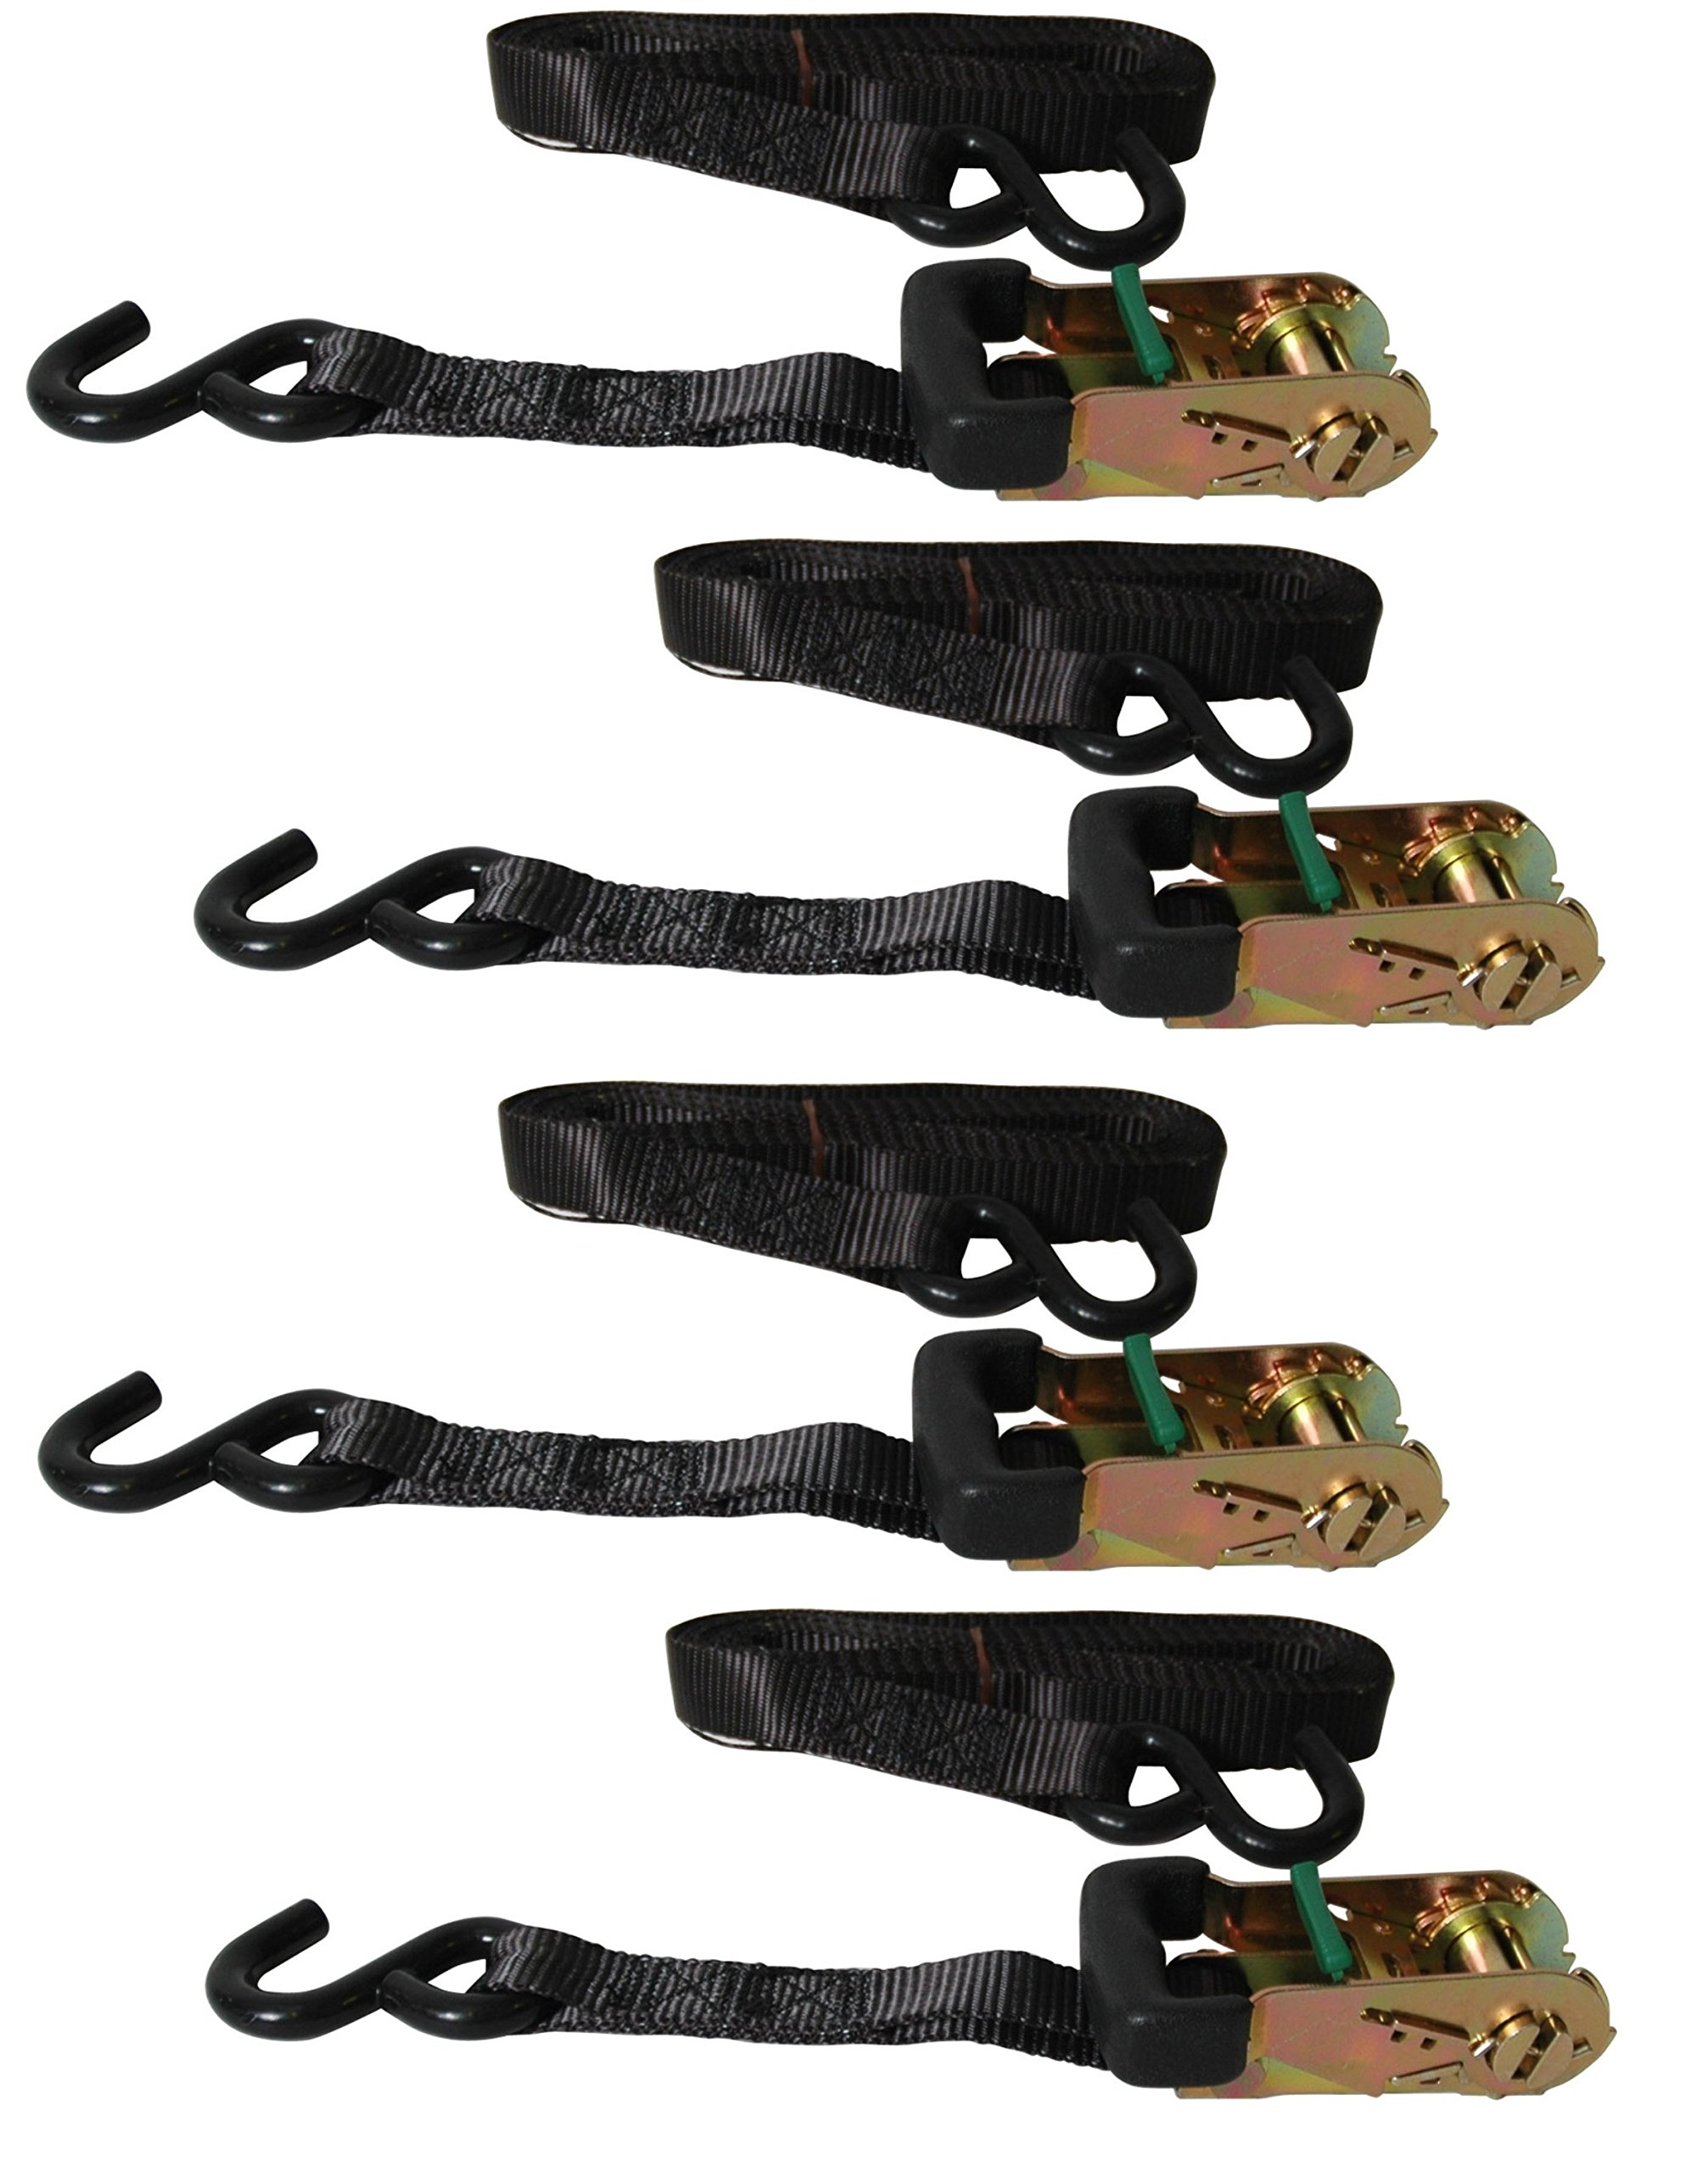 Reese Secure 9425200 14' Heavy Duty Ratchet with Grip Handle, 4 pack